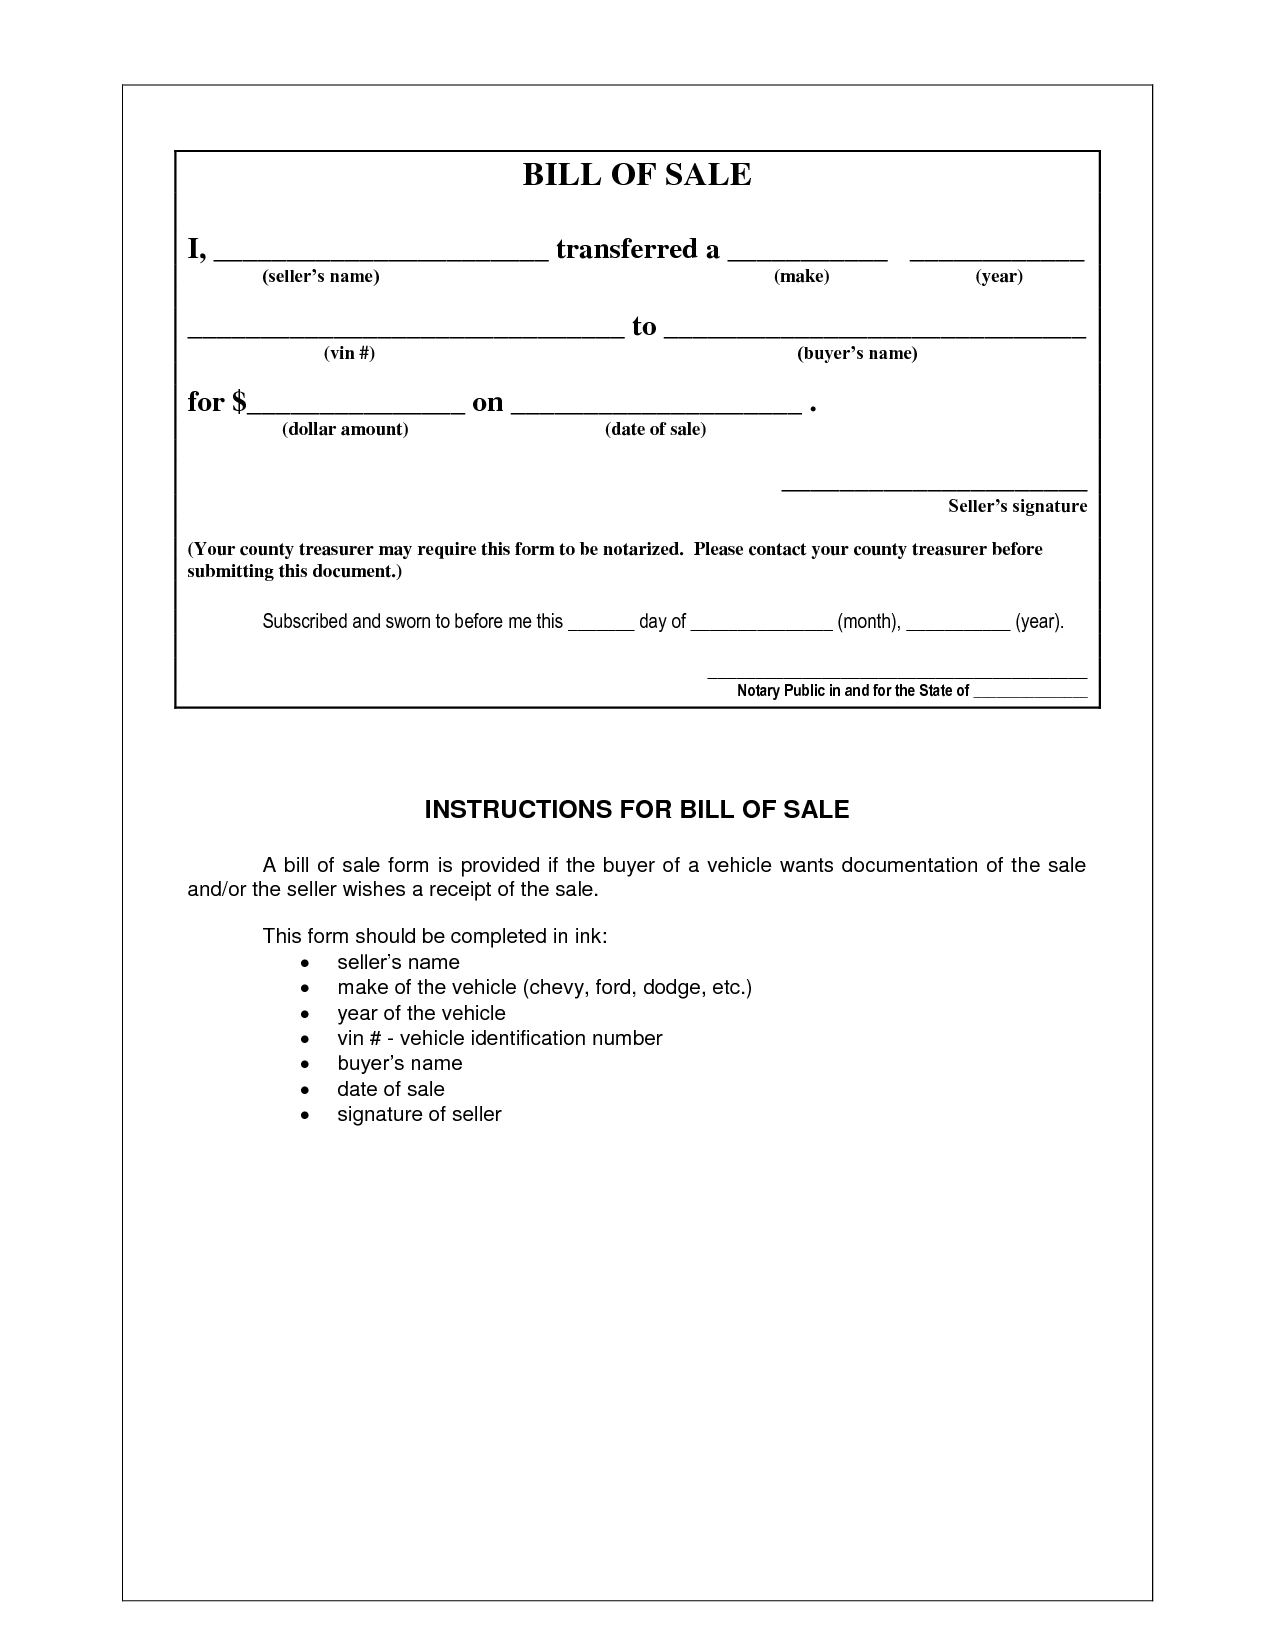 Picture {5} of {17} - Example Bill Of Sale Form - Photo Gallery ...